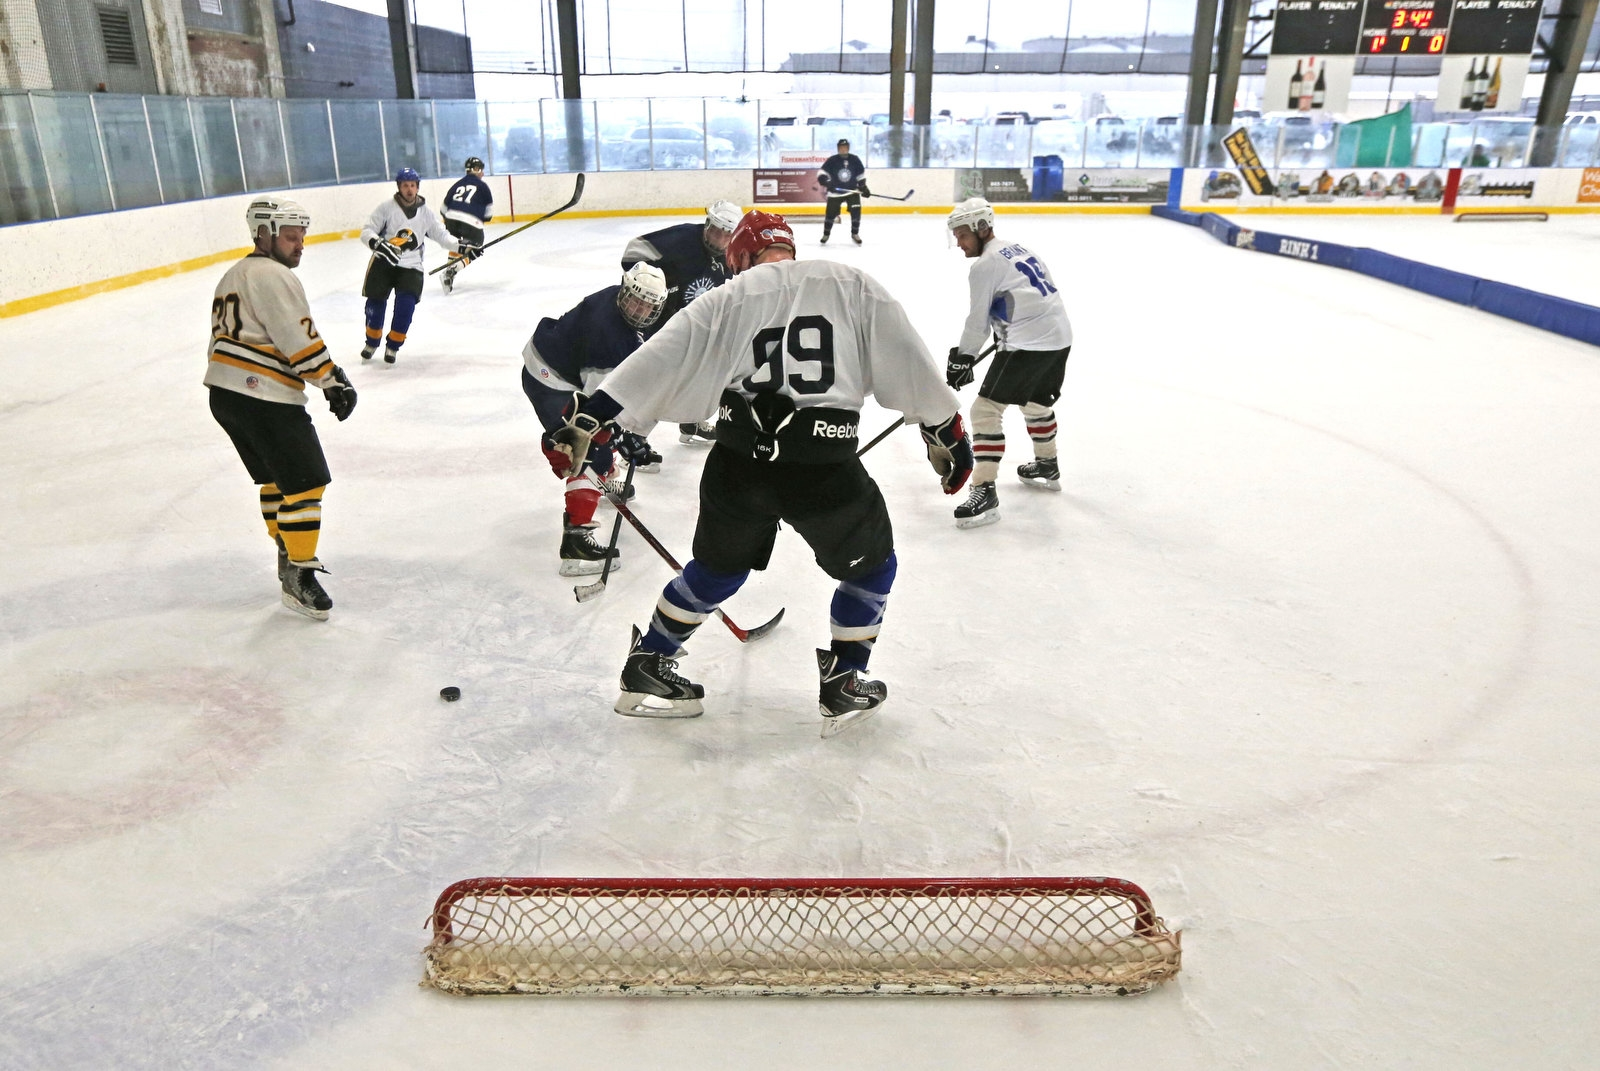 Members of the Buffalo DPW team, in dark blue, and The Ice Breakers tangle on the ice during play during the Pond Hockey event at RiverWorks.